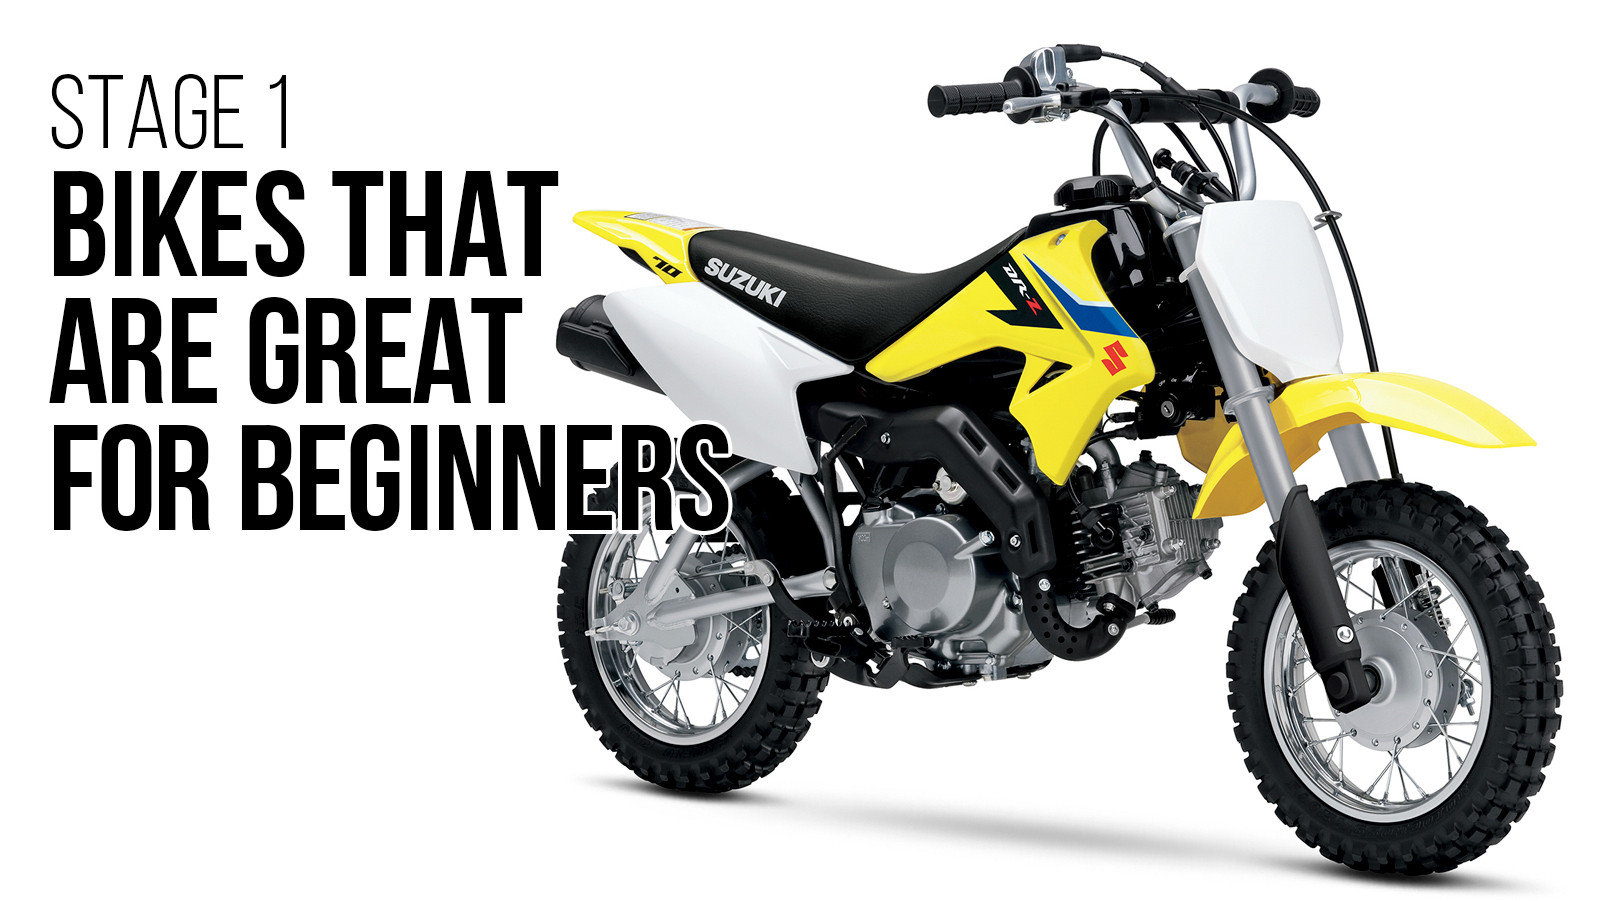 Stage 1: Bikes That Are Great For Beginners